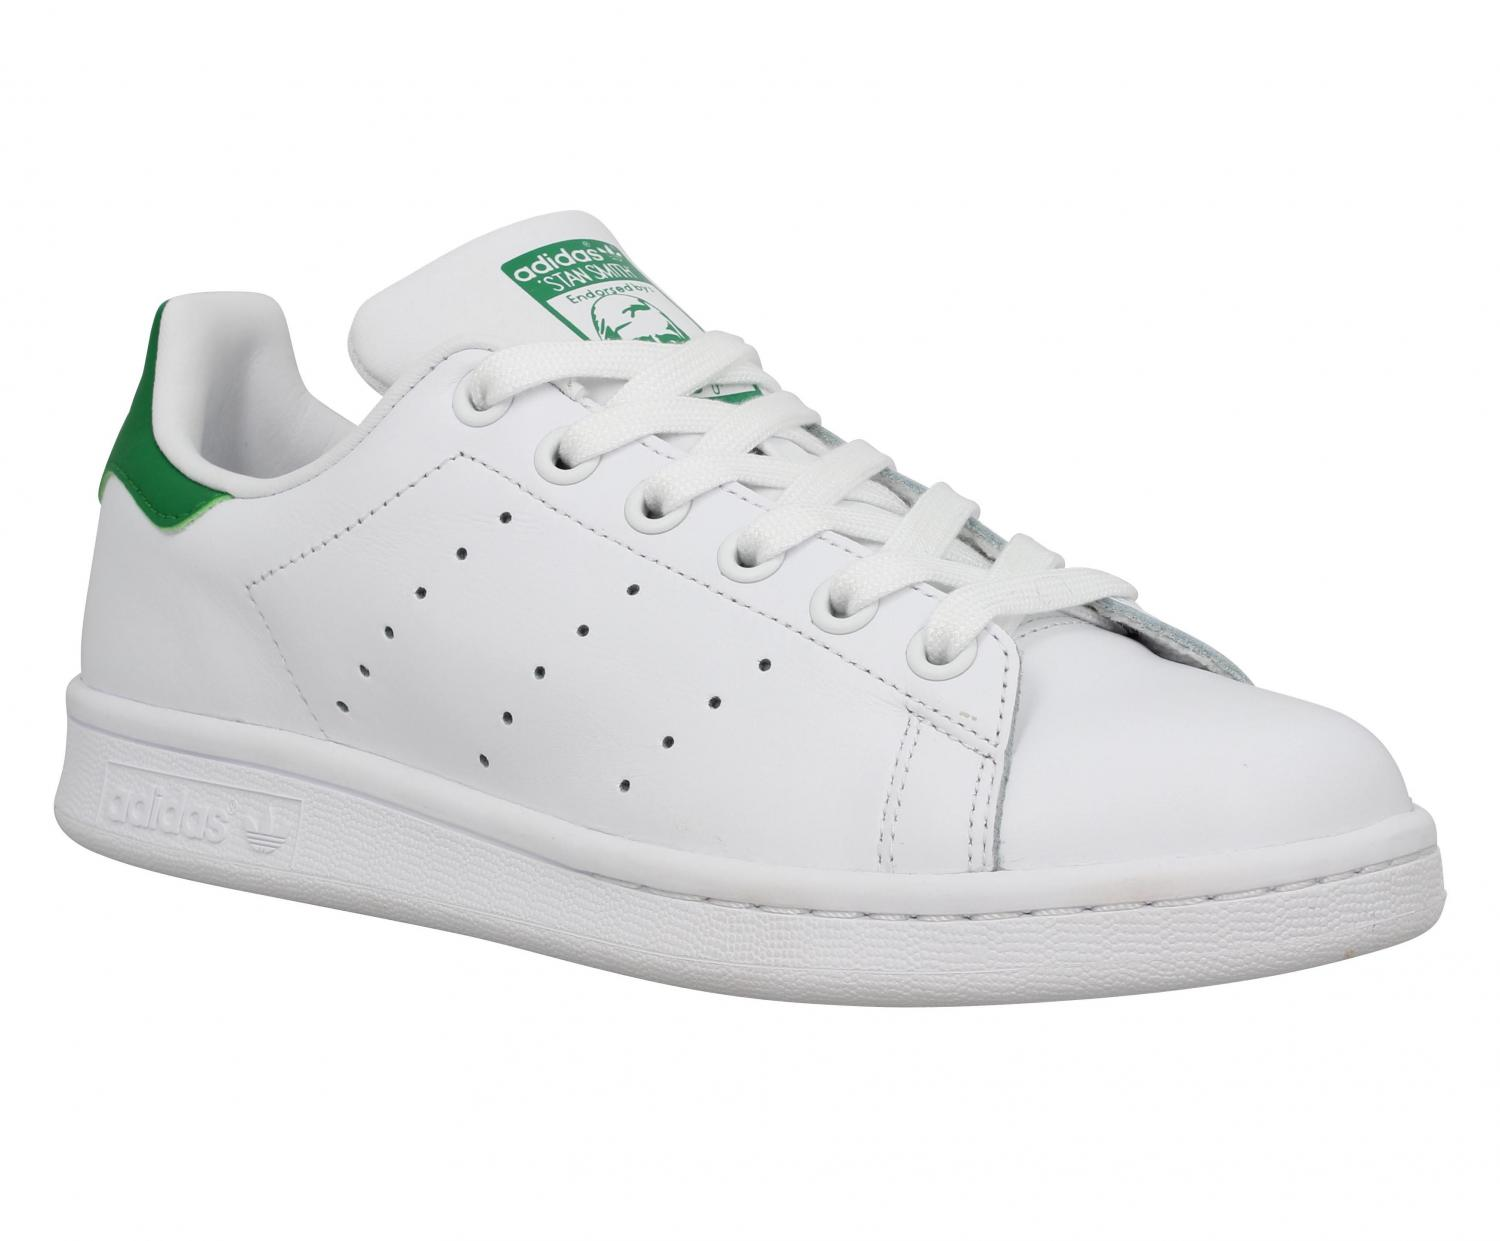 new product 62400 10654 Adidas Baskets Stan Smith Femme Blanc + Vert